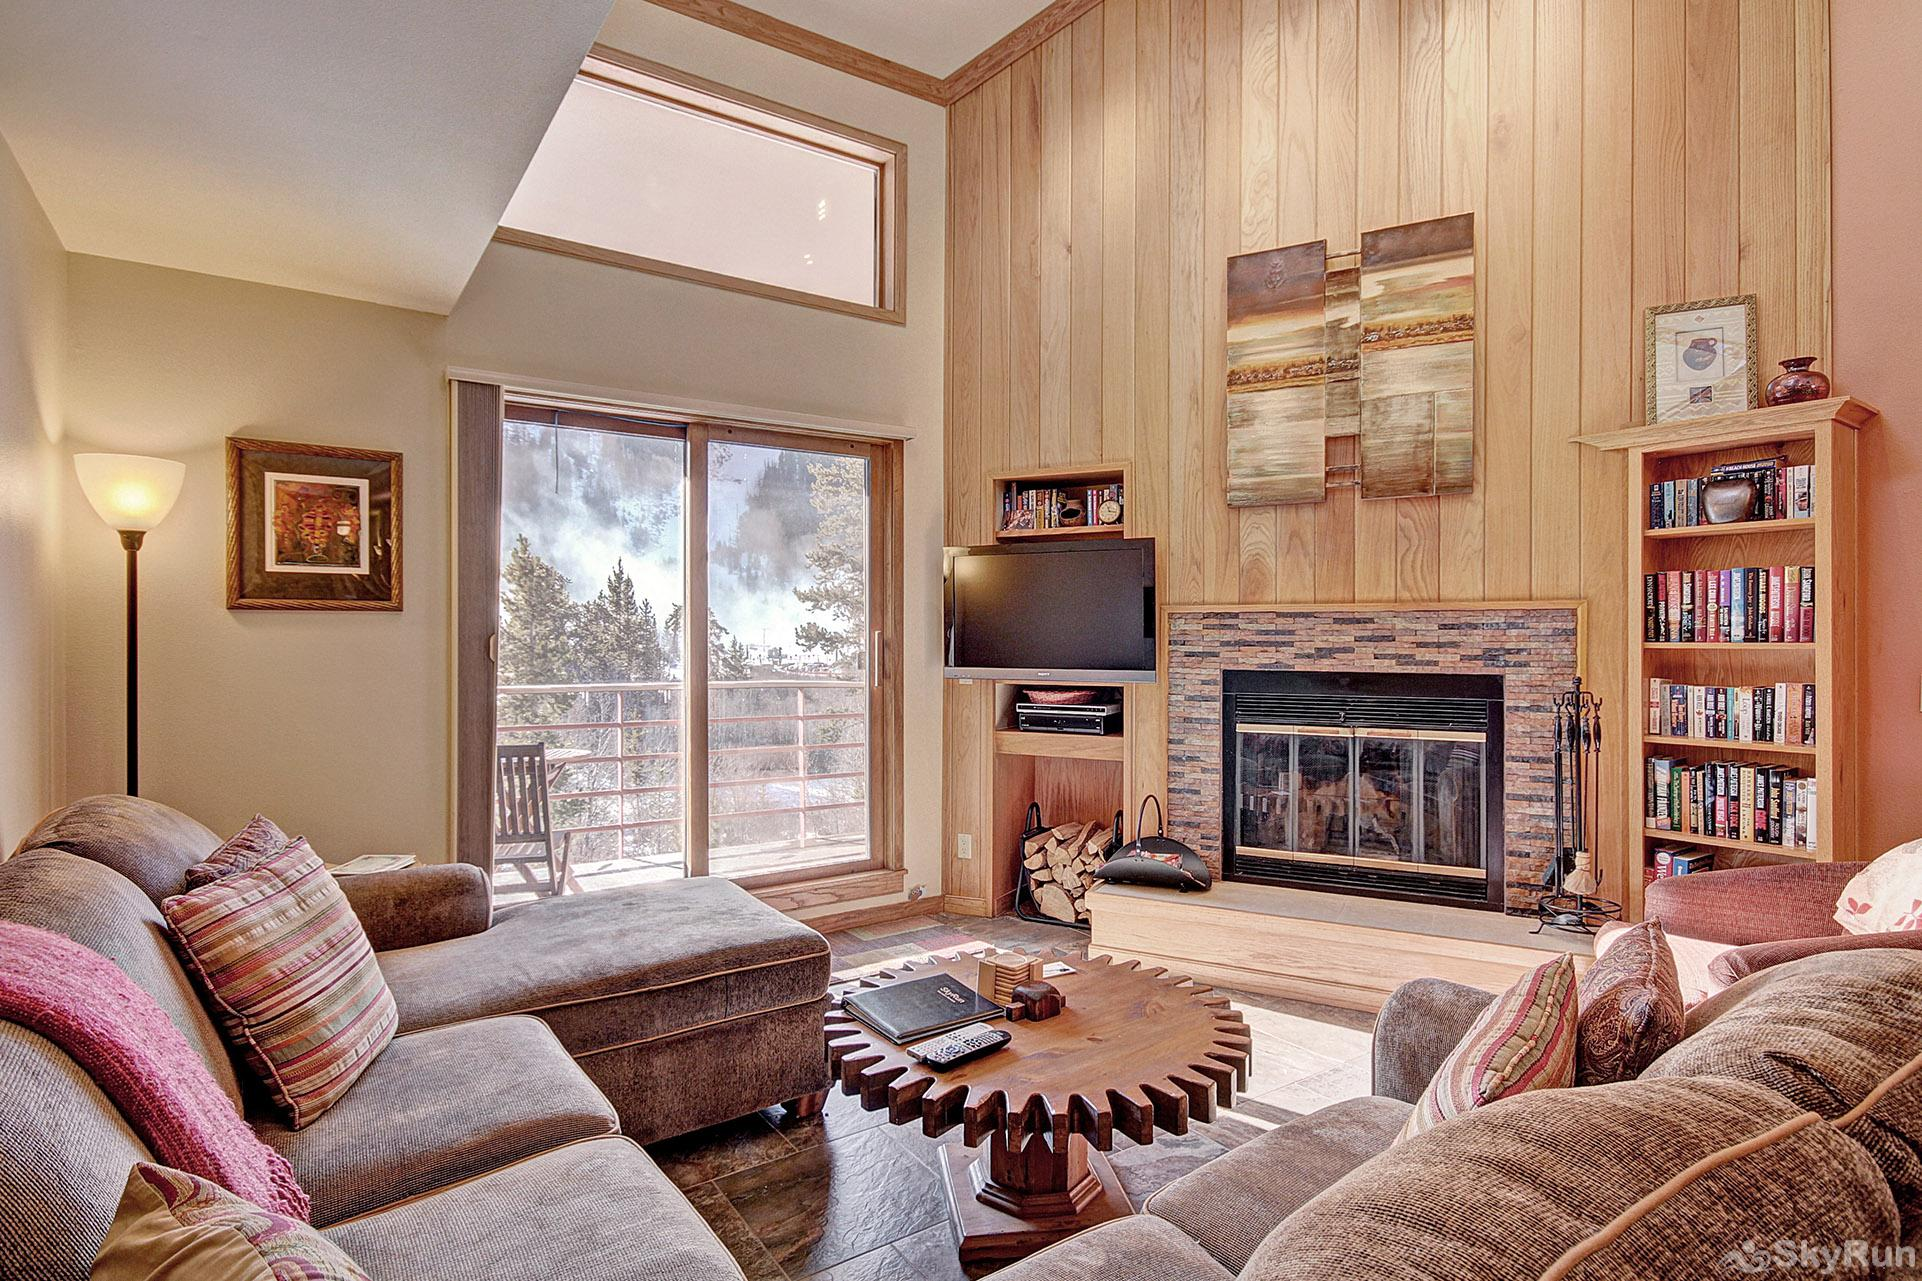 413 Ski Run Living Room